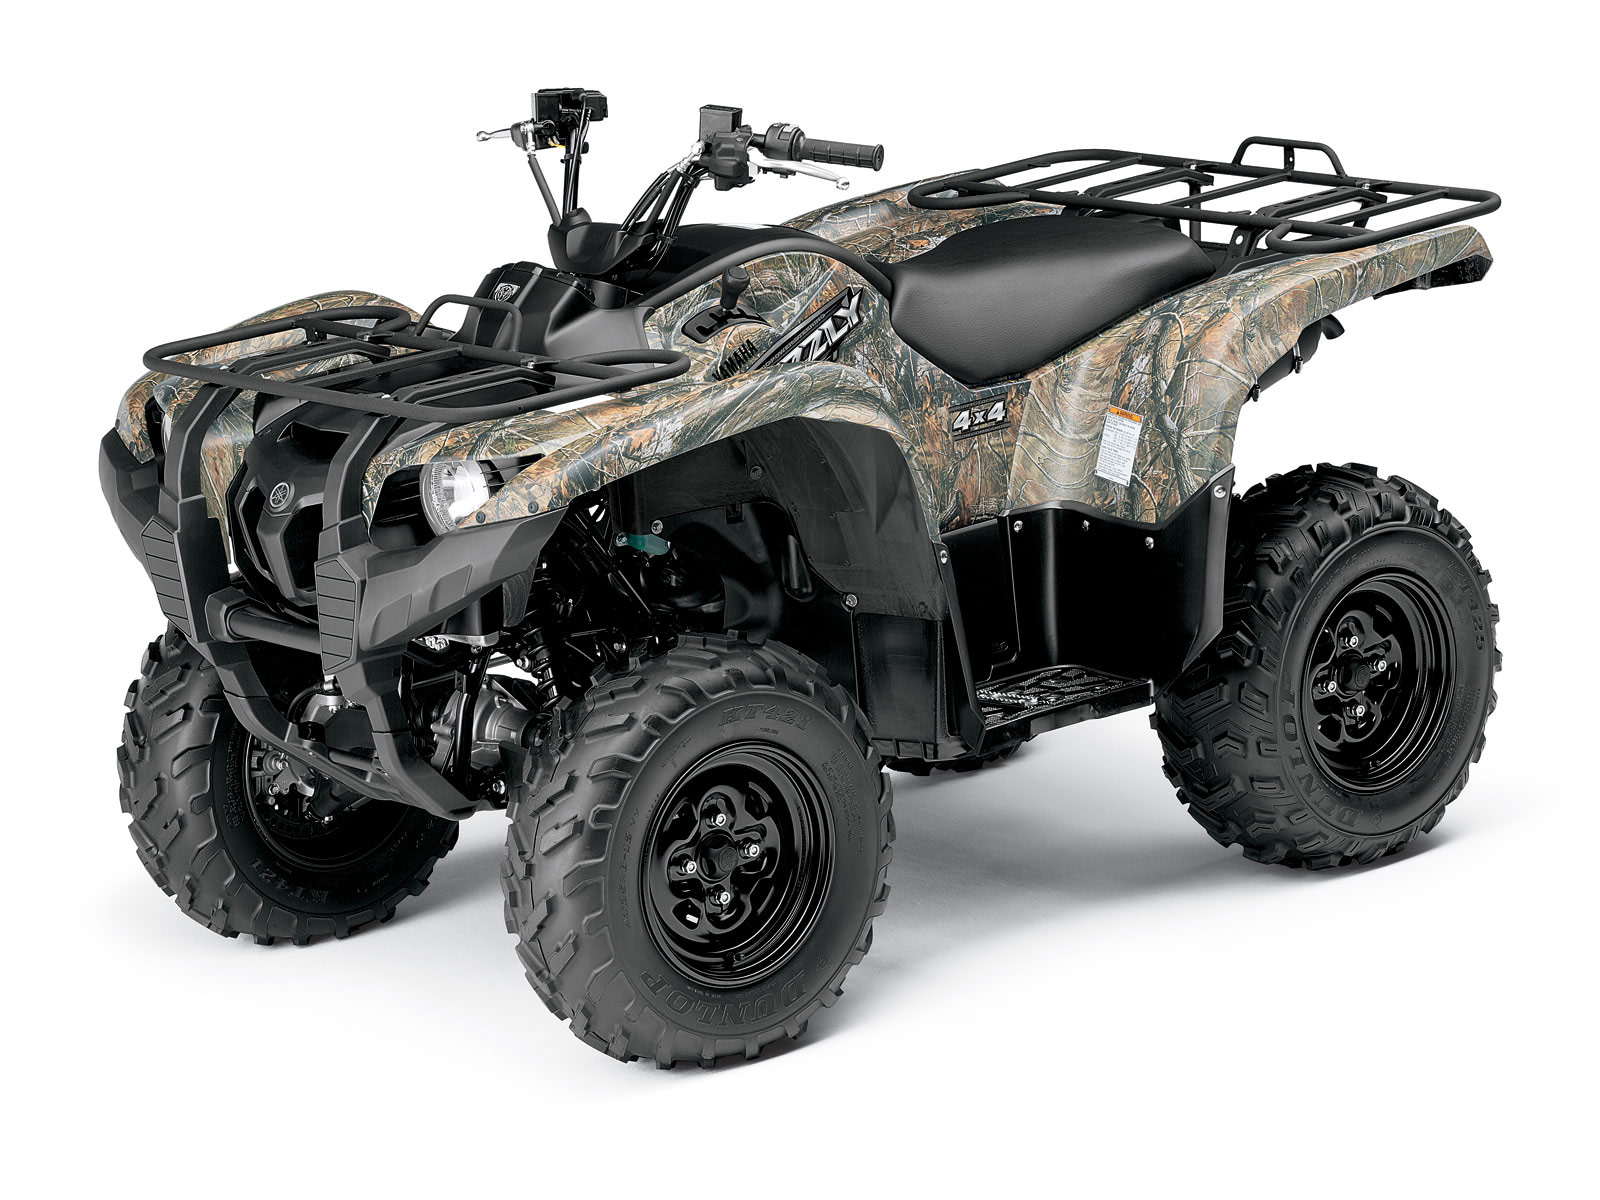 Yamaha grizzly 700 fi eps ducks unlimited 2009 atv for Yamaha grizzly atv